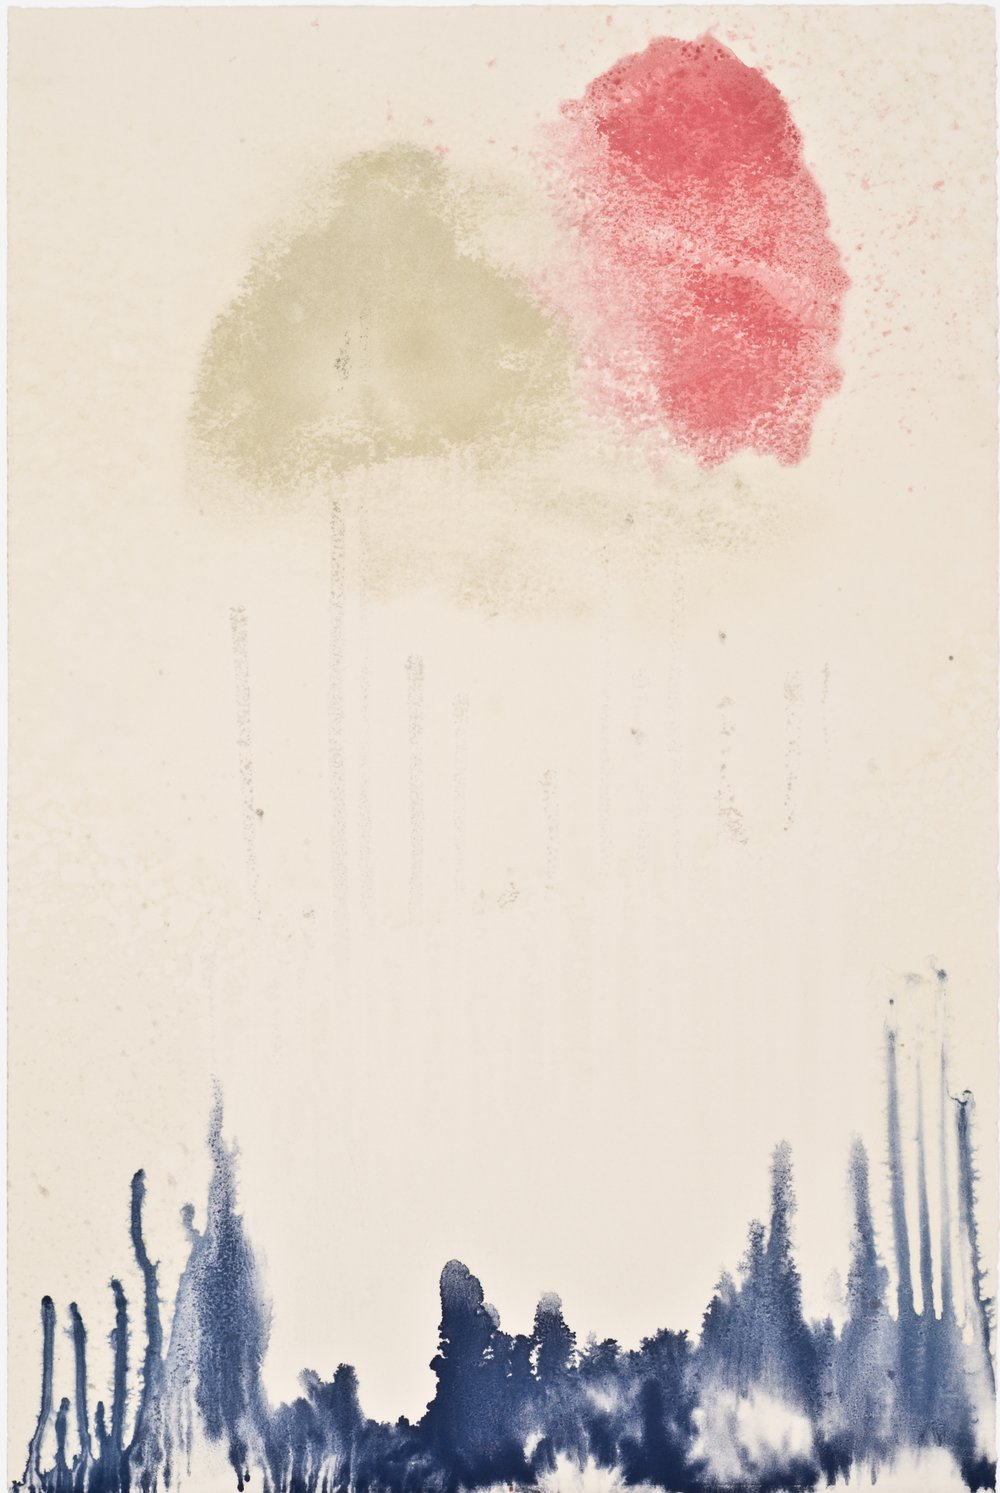 Untitled 44, 2012  oil on paper monoprint  18 x 12 inches  Wildwood Press